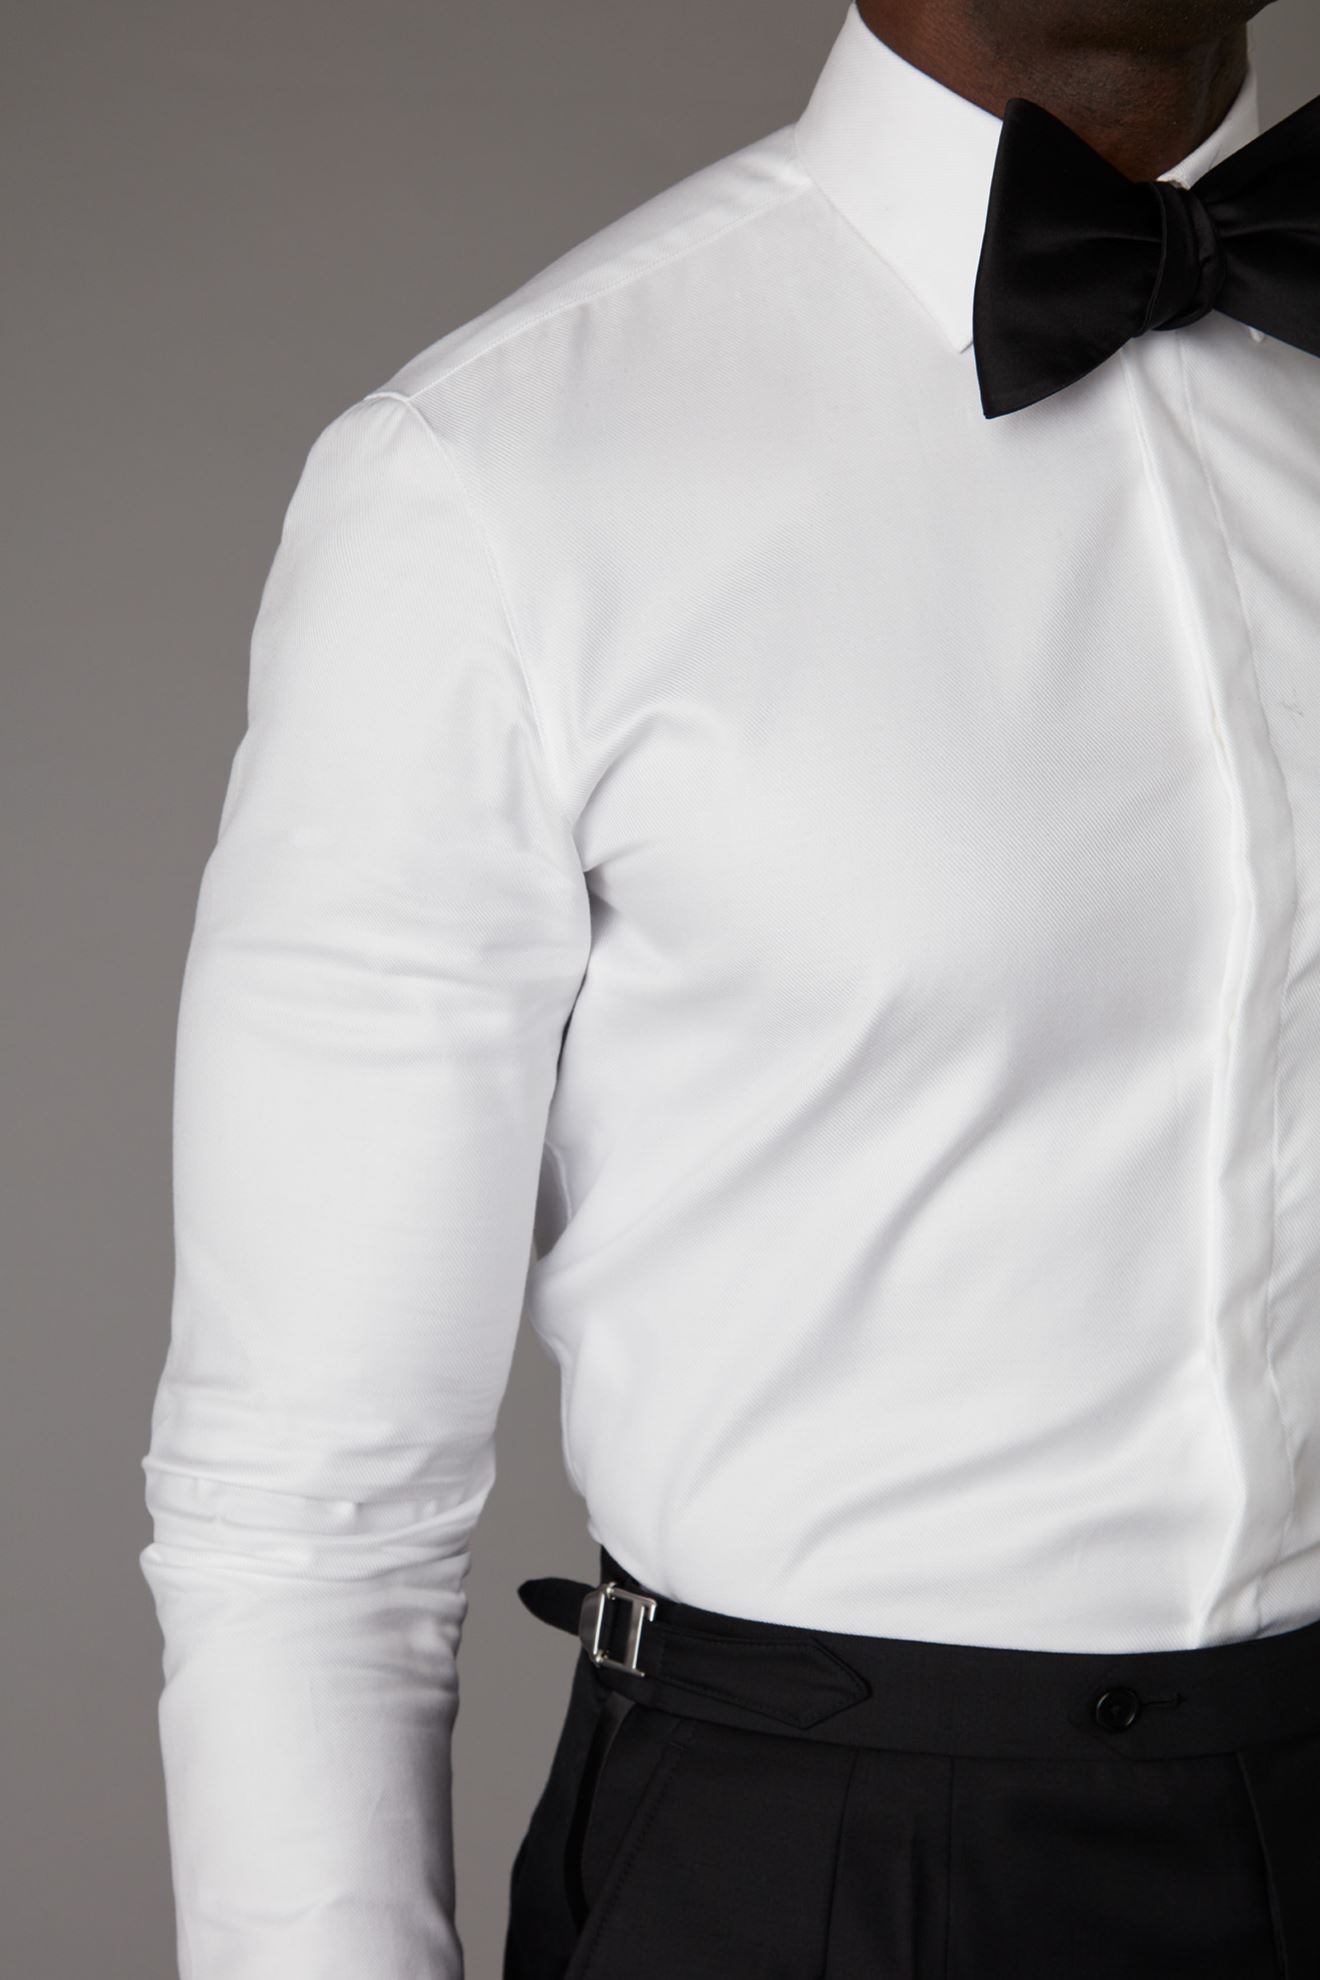 Picture of White Tuxedo Shirt